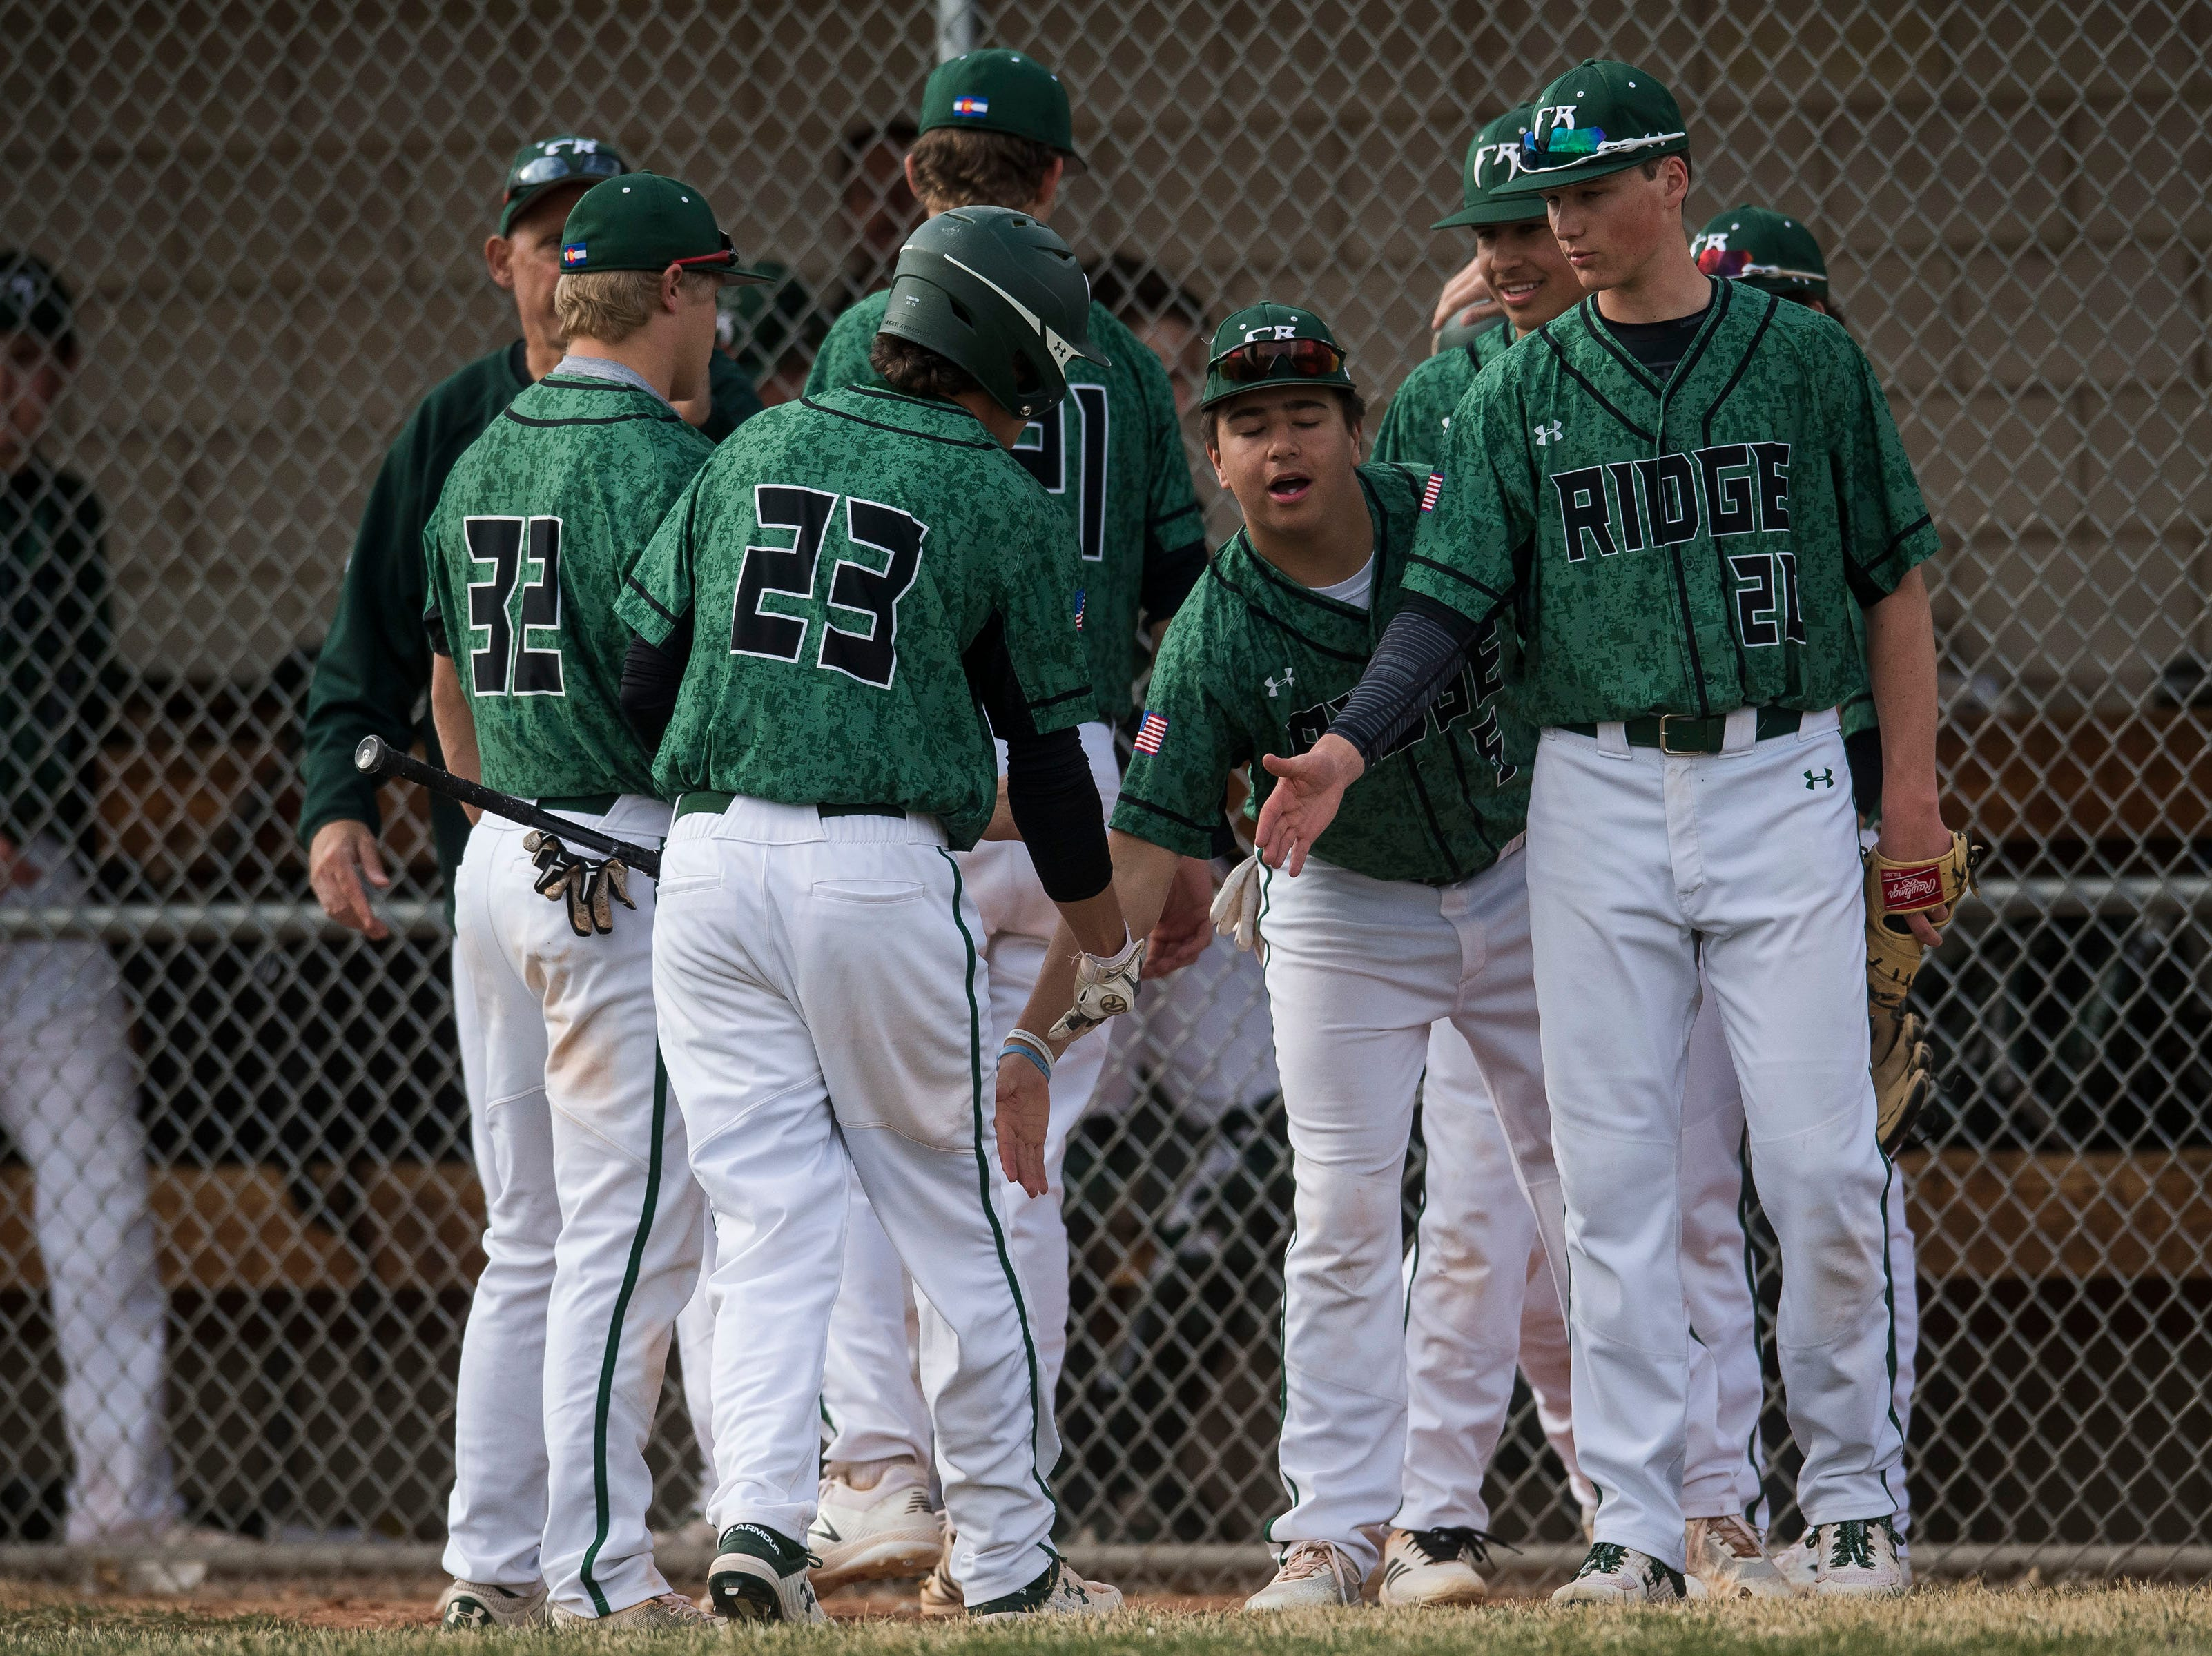 Fossil Ridge High School runner Dillon Henninger (23) is greeted by teammates after scoring against Poudre High School on Wednesday, April 3, 2019, at Fossil Ridge High School in Fort Collins, Colo.